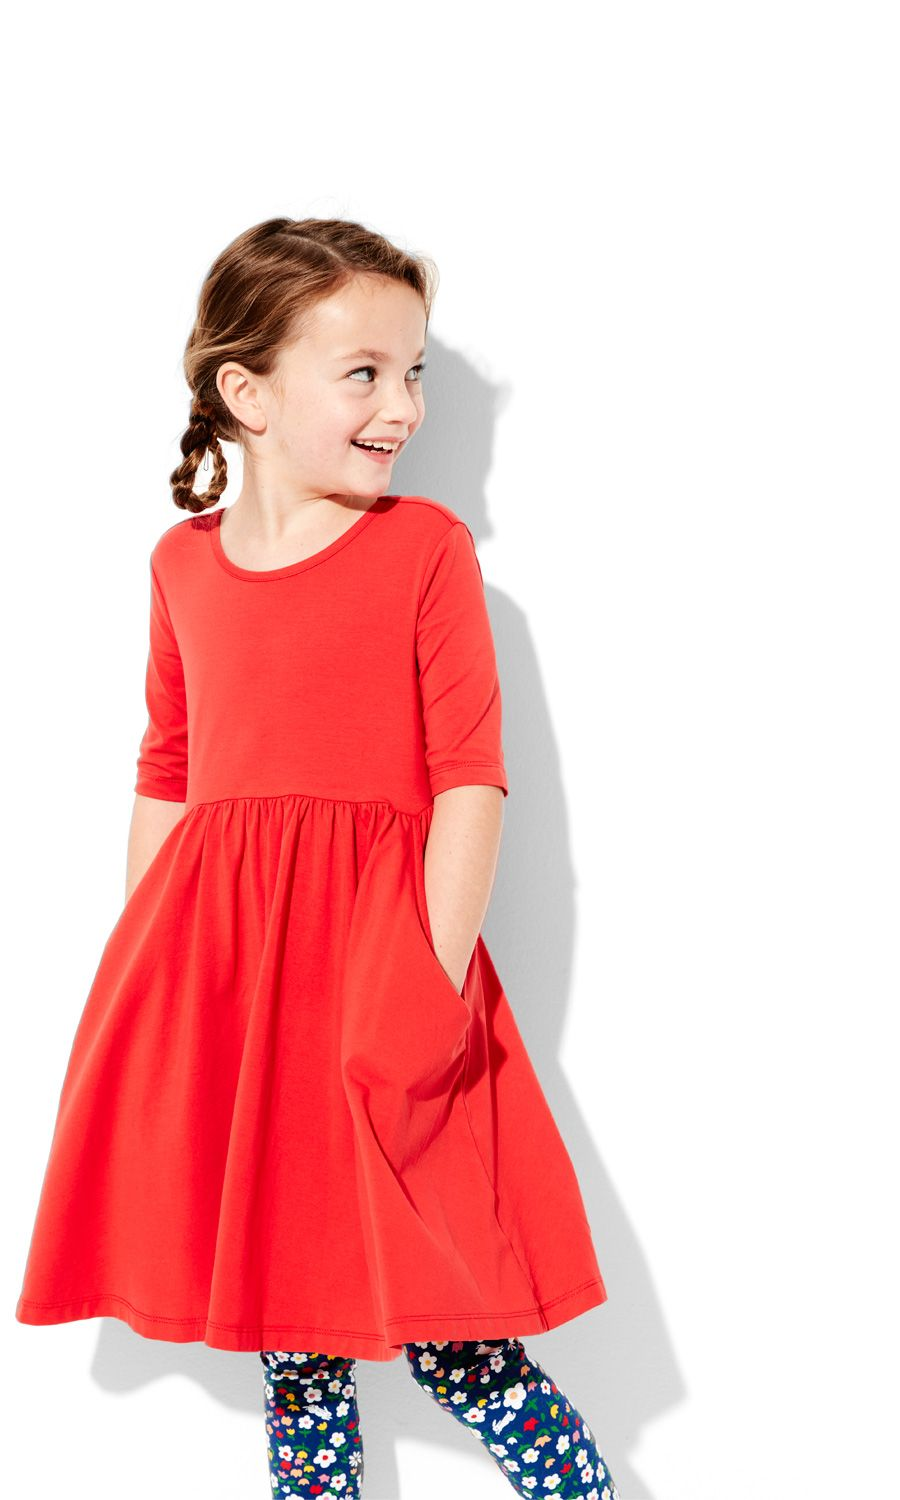 Happiness in a dress...supersoft and comfy stretch cotton twirls as easily as it washes, with wear-it-every-day durability.  •Cotton/spandex stretch jersey  •Fitted bodice with full skirt  •Elbow length sleeves  •Pockets  •Scoopback neckline